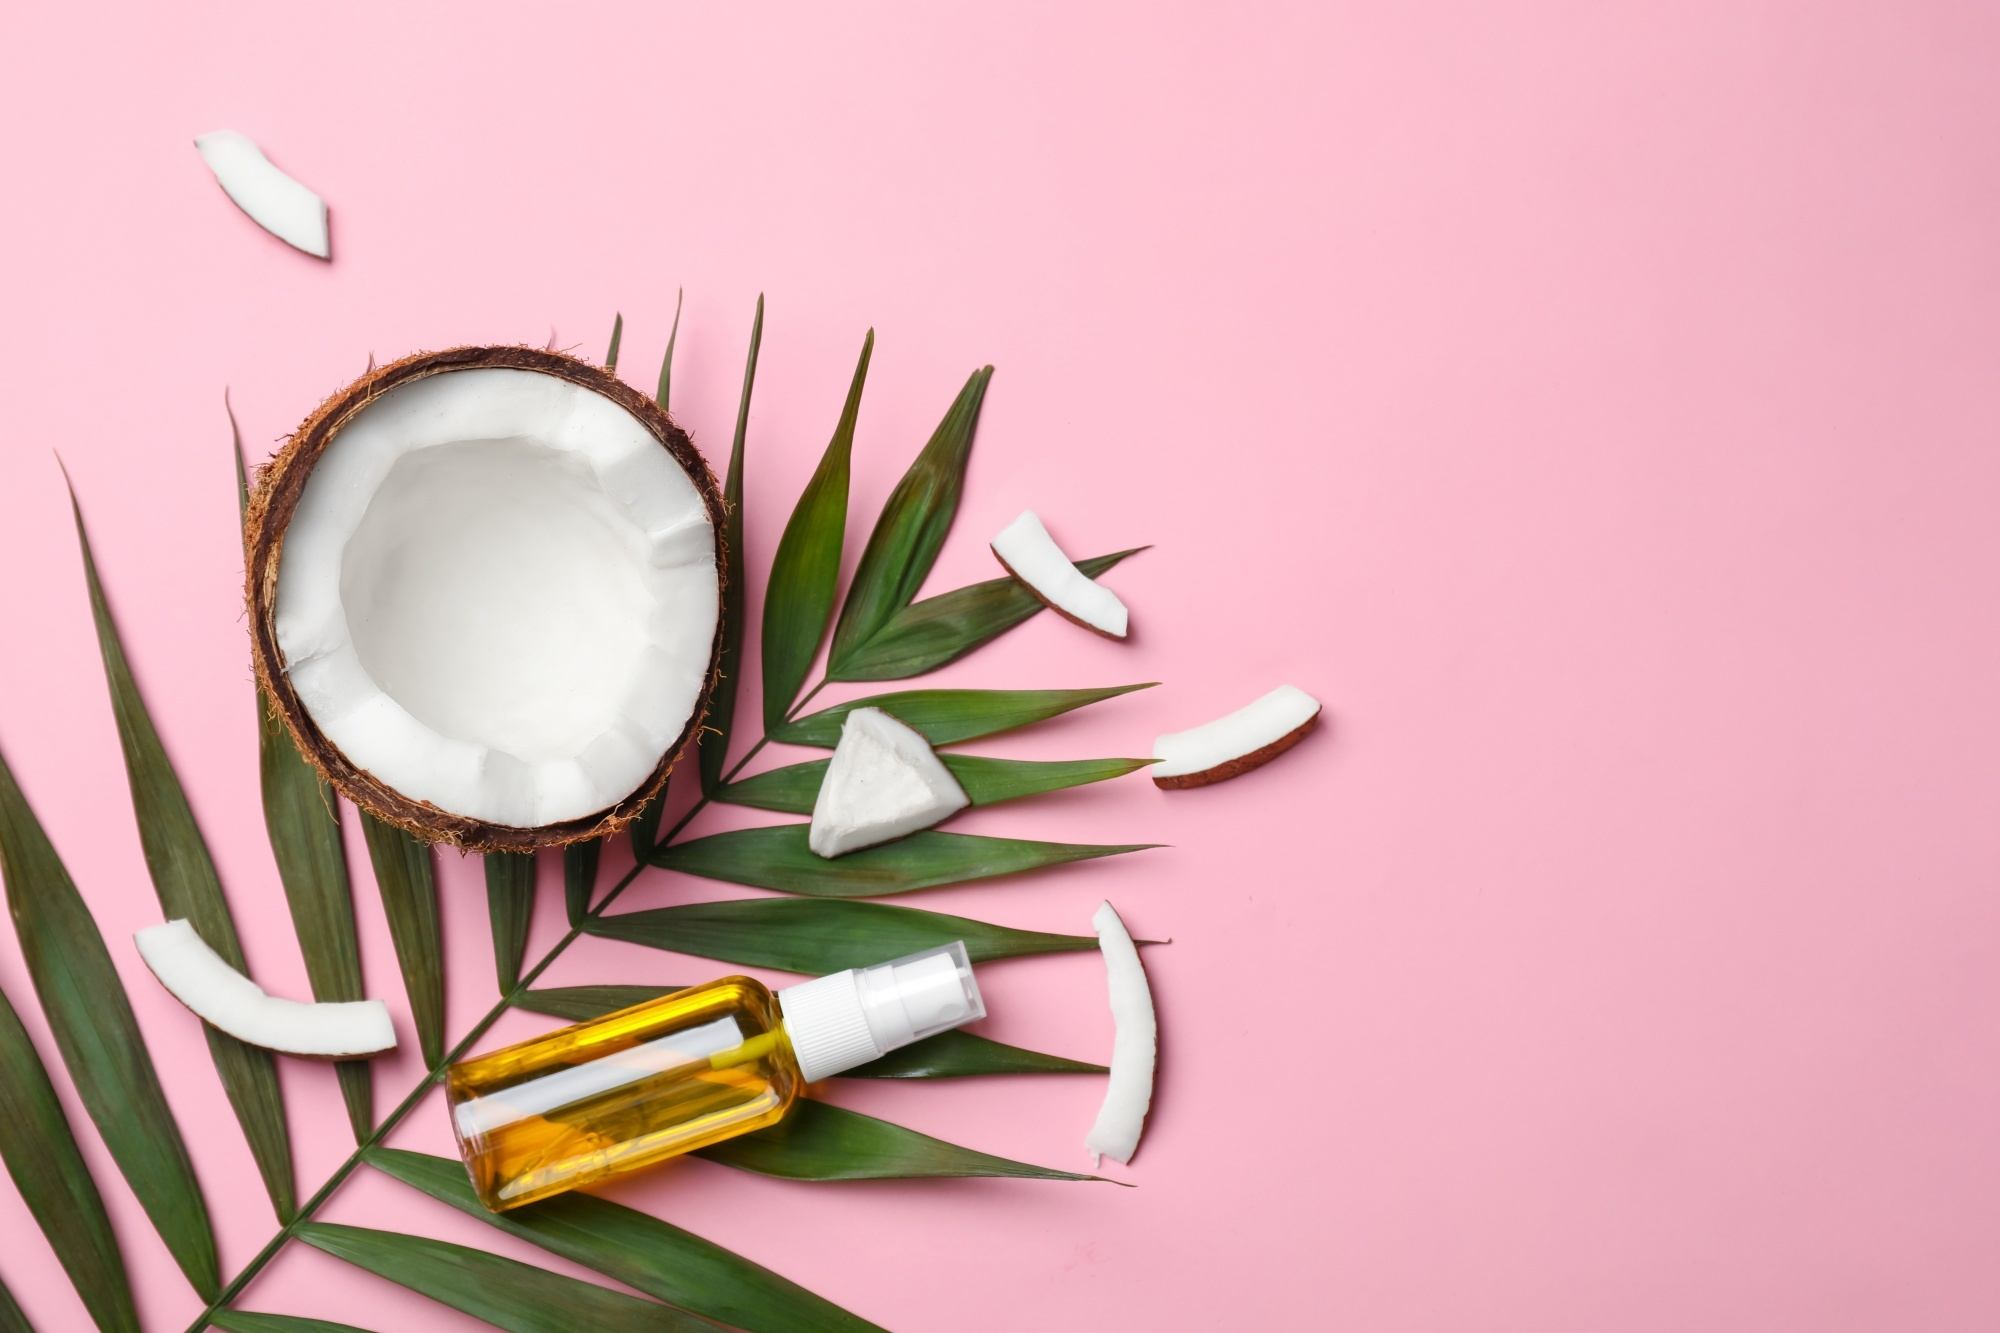 Natural dandruff remedies: a half of a coconut with a bottle of its oil